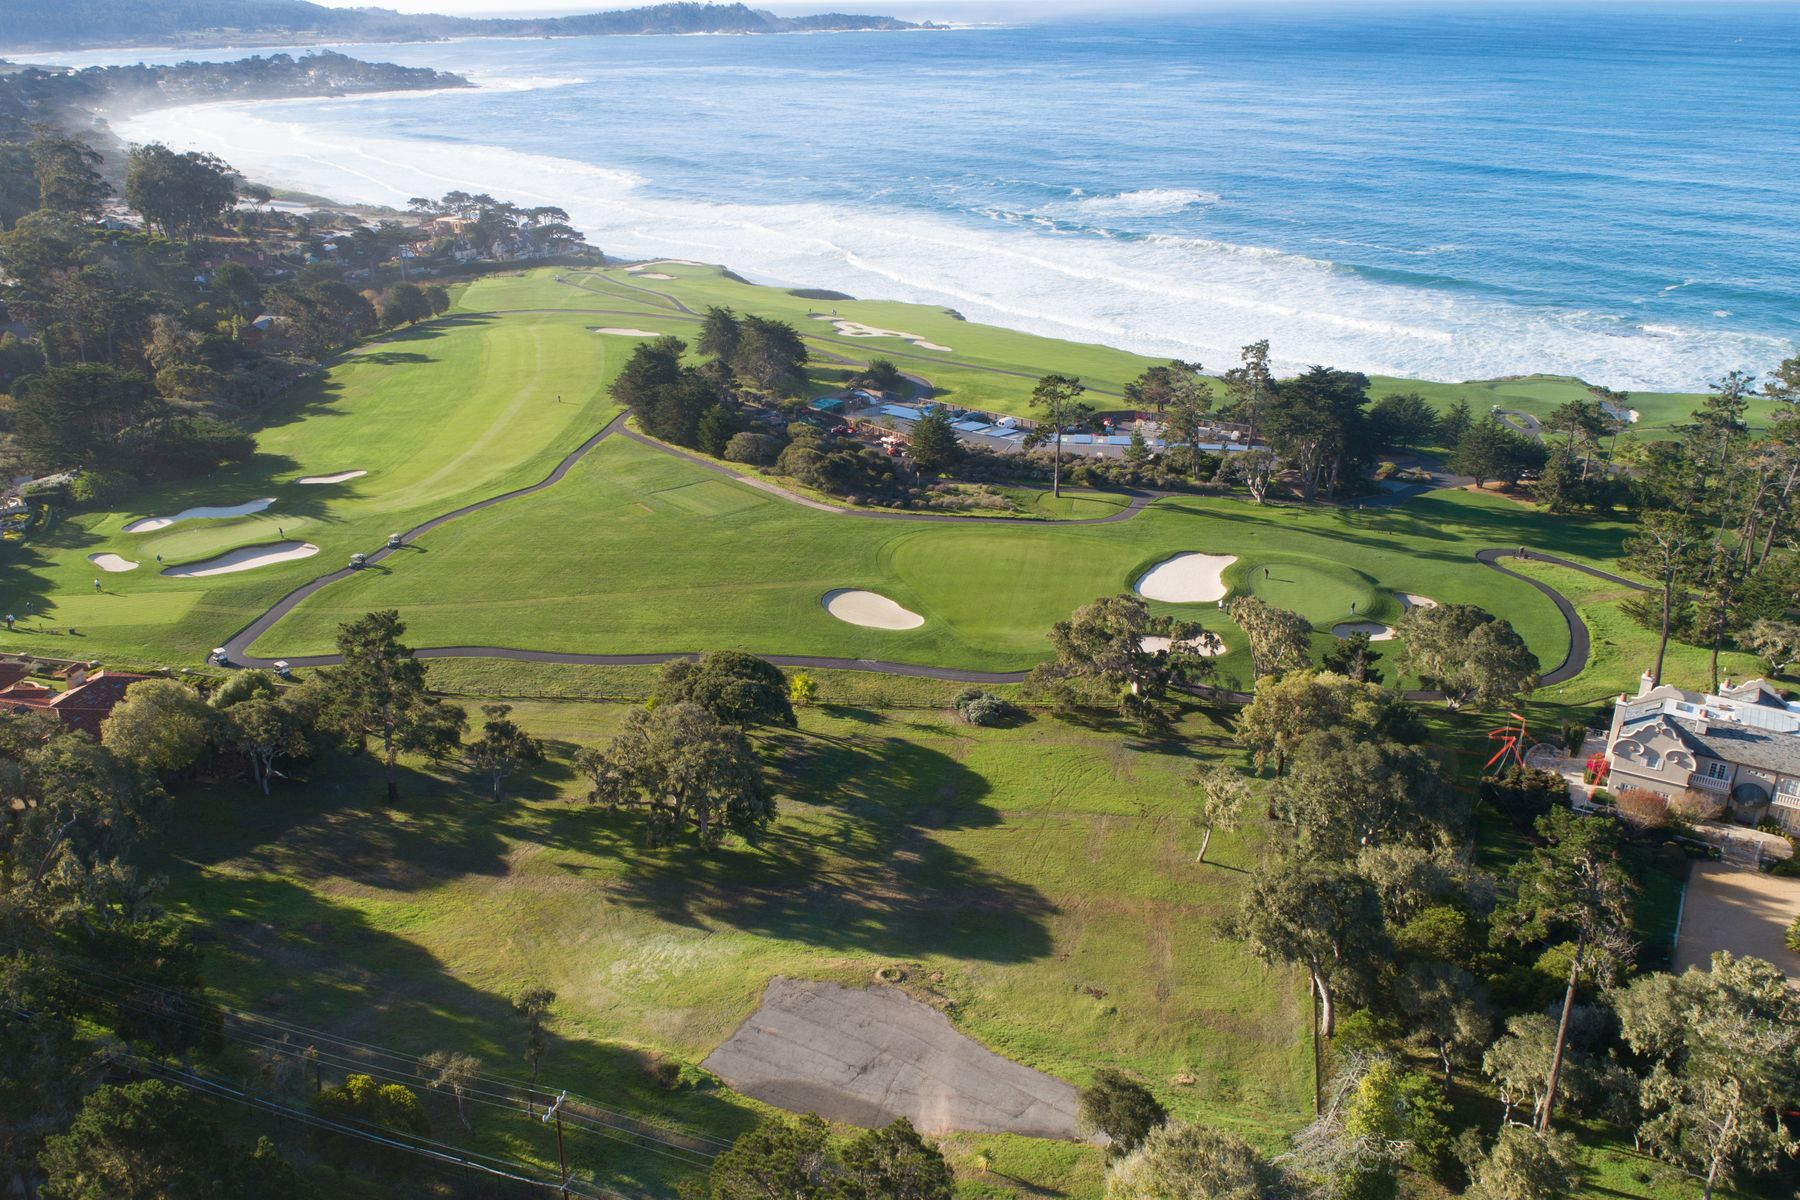 Land for Sale at Two Lots on Pebble Beach Golf Links 3418 17 Mile Drive Pebble Beach, California 93953 United States